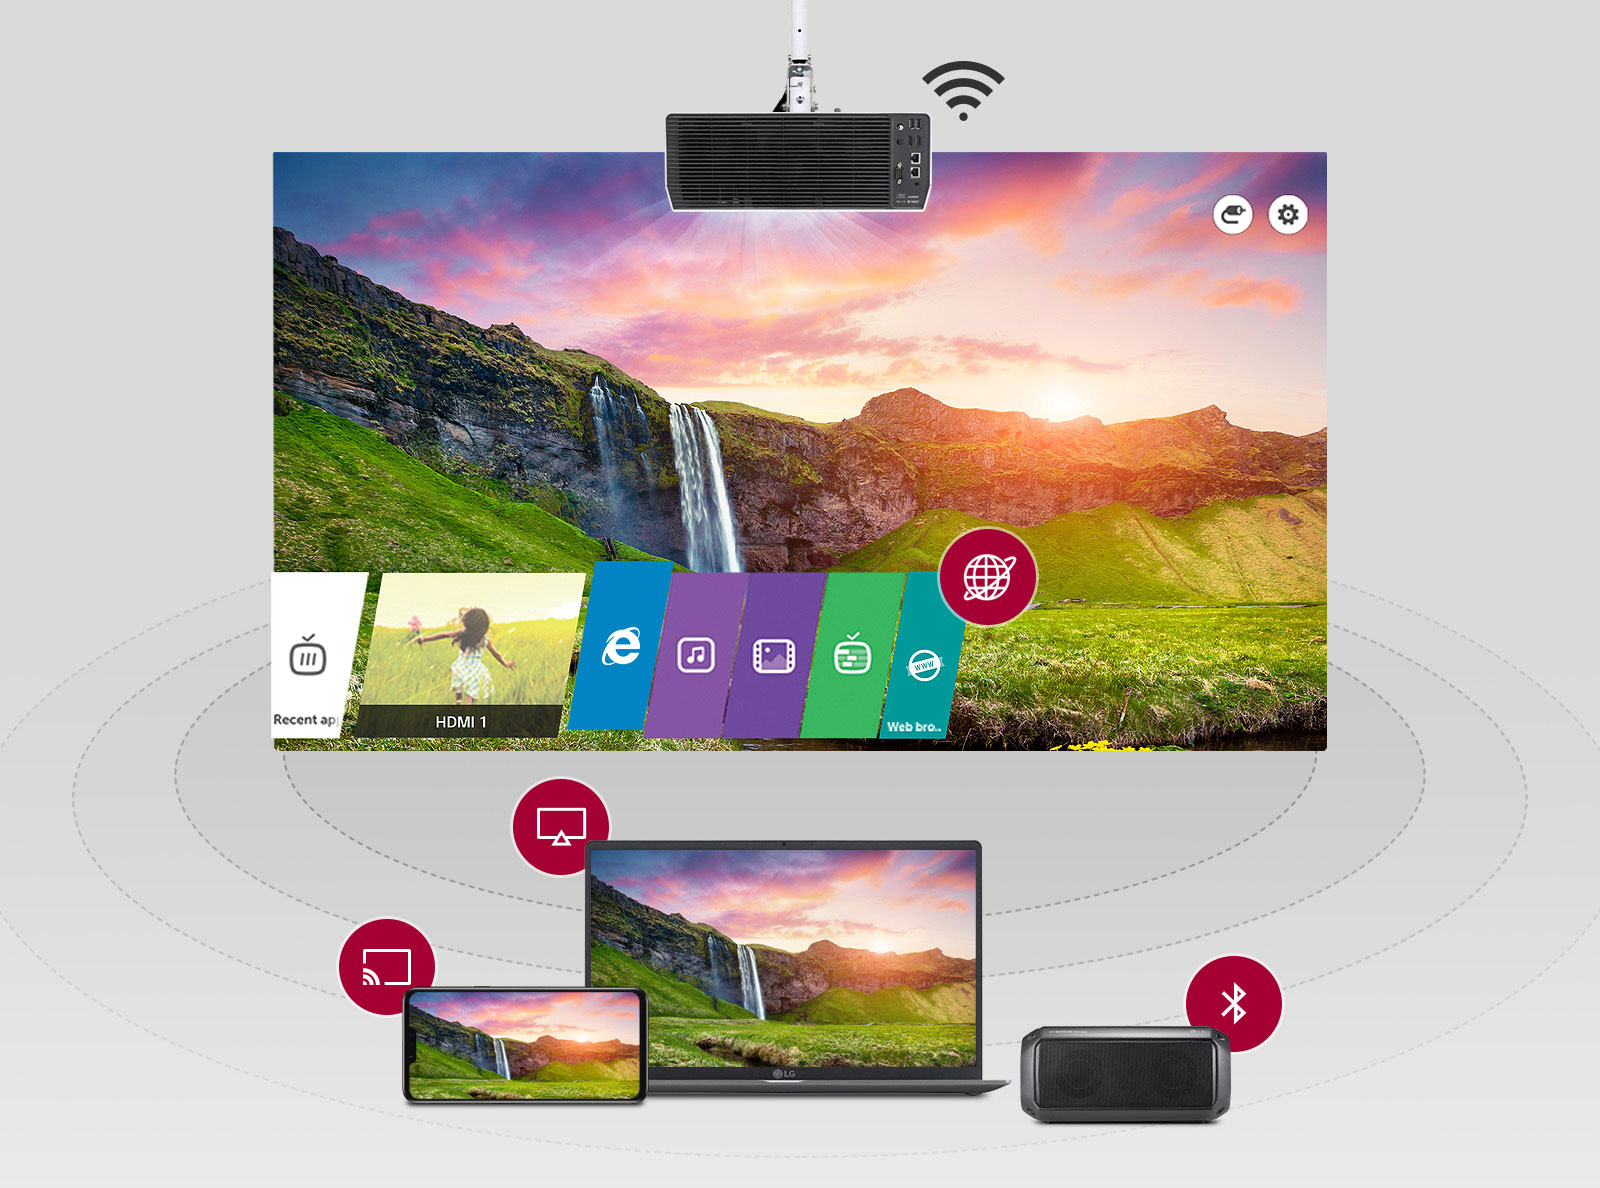 Live TV on the projector connected with other devices through mirroring, and Miracast, and Bluetooth pairing.